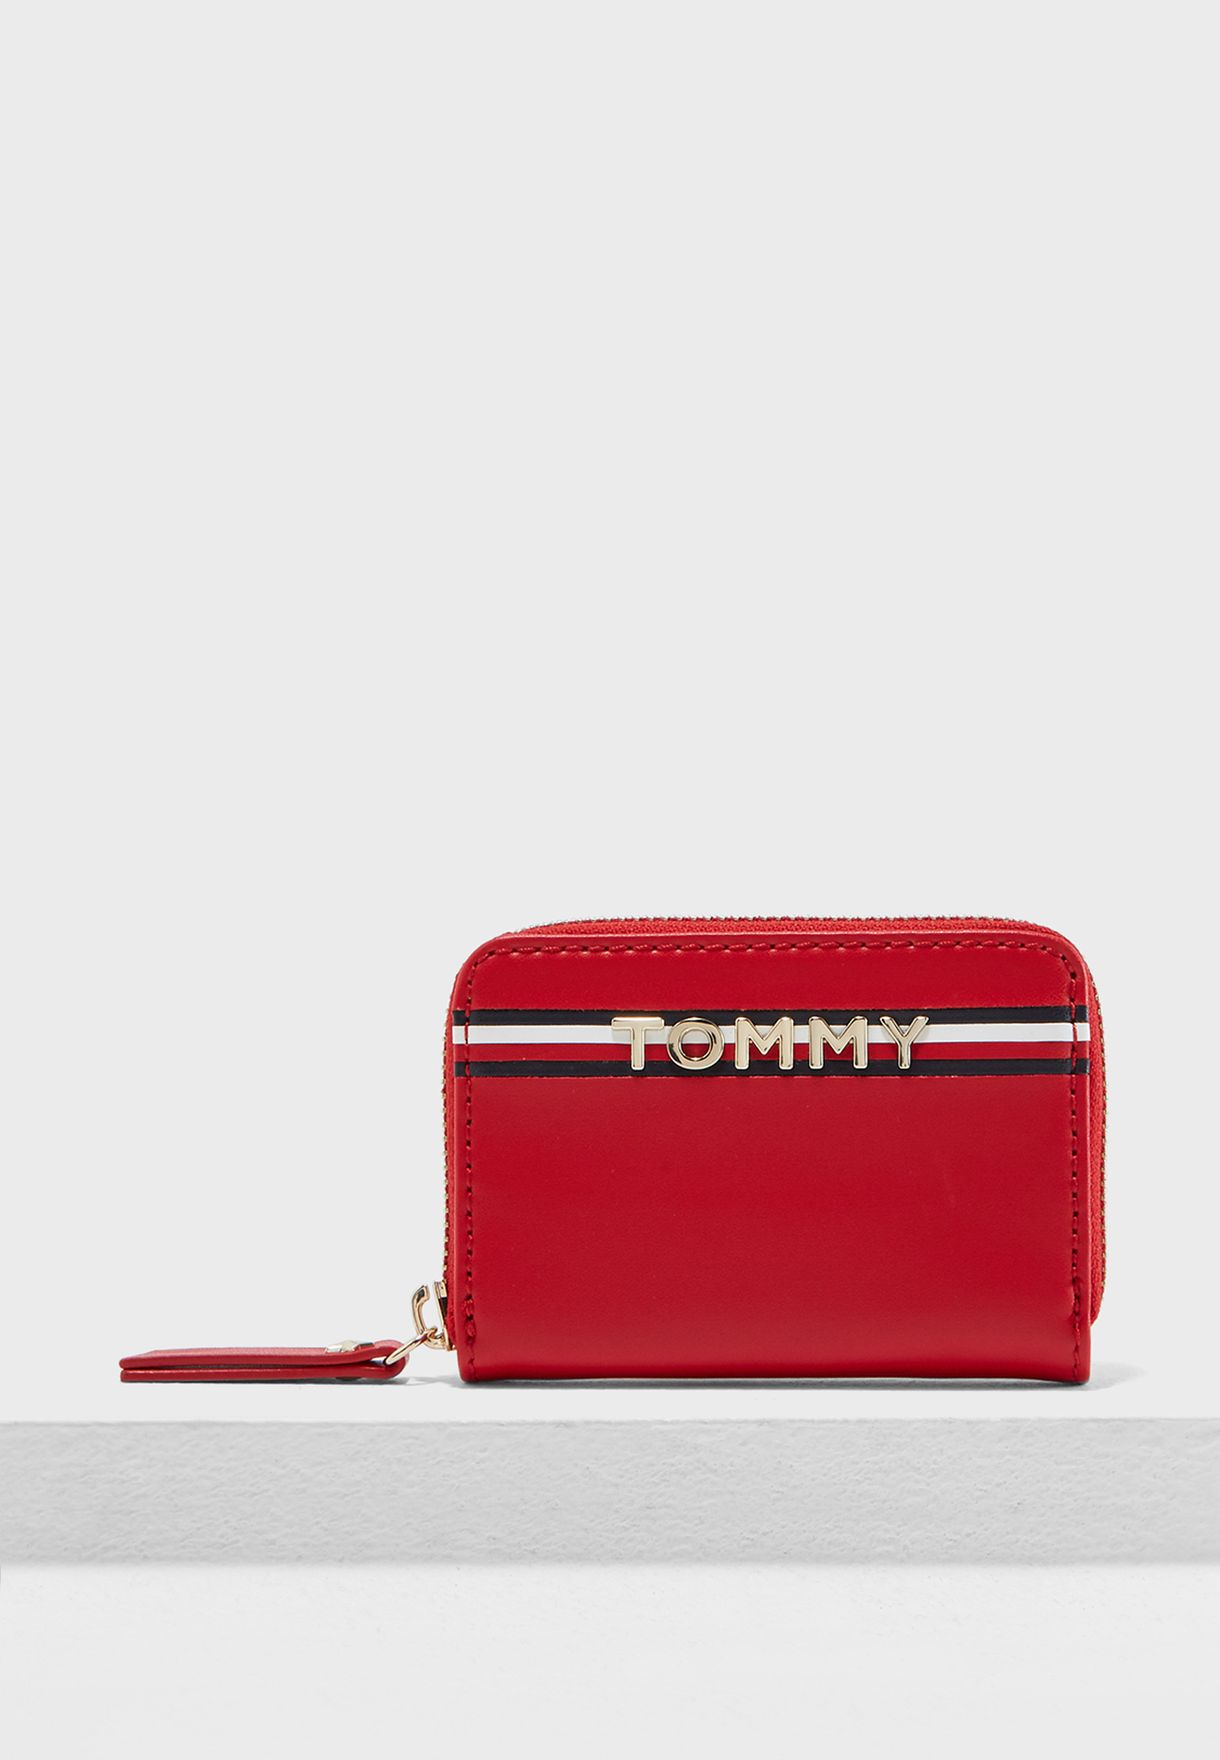 cb03e0c9c1 Shop Tommy Hilfiger red Mini Iconic Purse AW0AW05734 for Women in ...